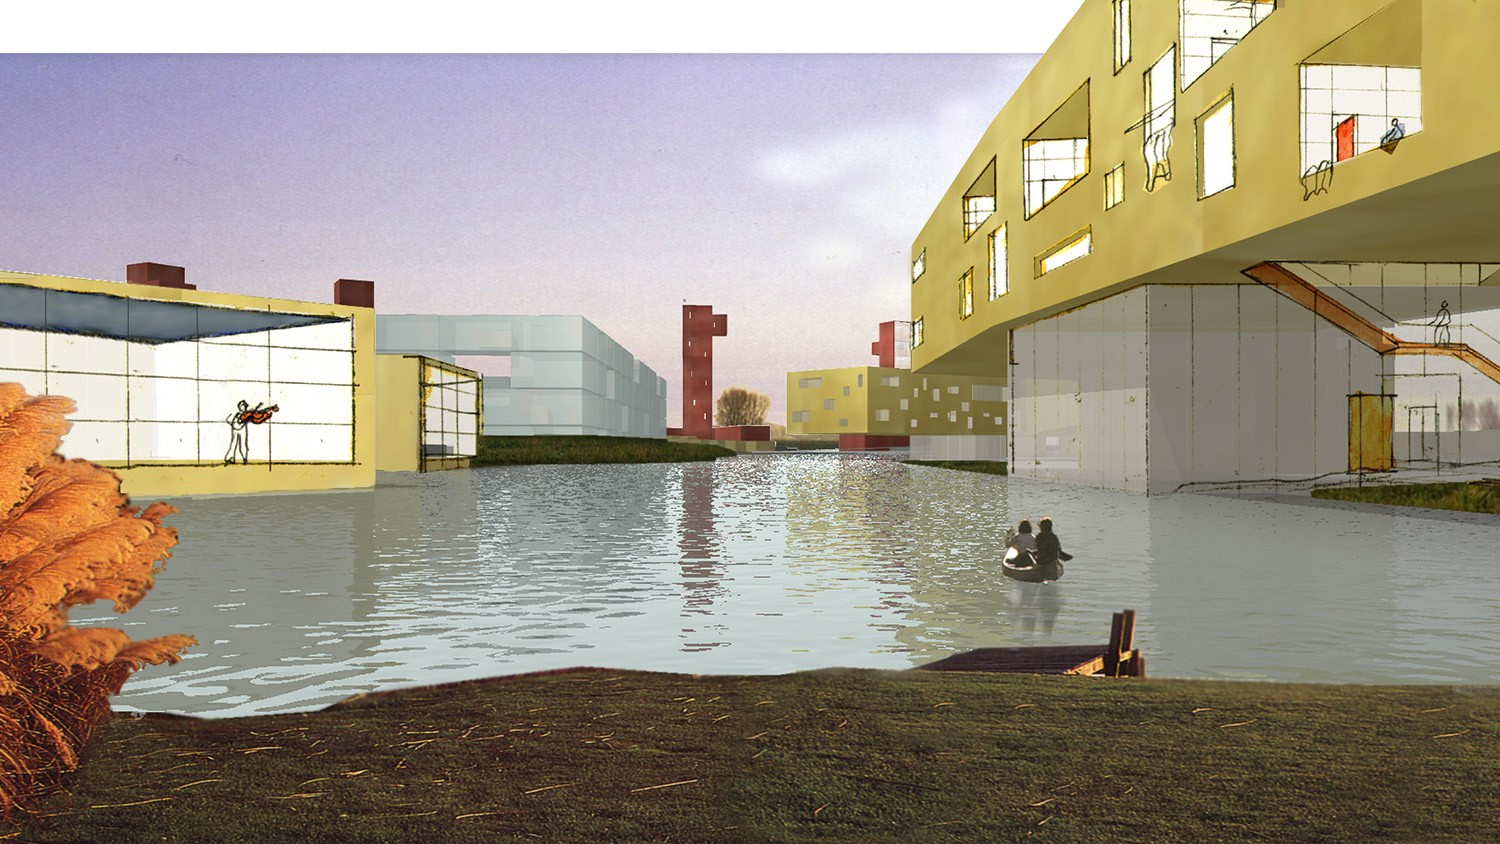 https://stevenholl.sfo2.digitaloceanspaces.com/uploads/projects/project-images/StevenhollArchitects_Toolenburg_upthelake_WH.jpg